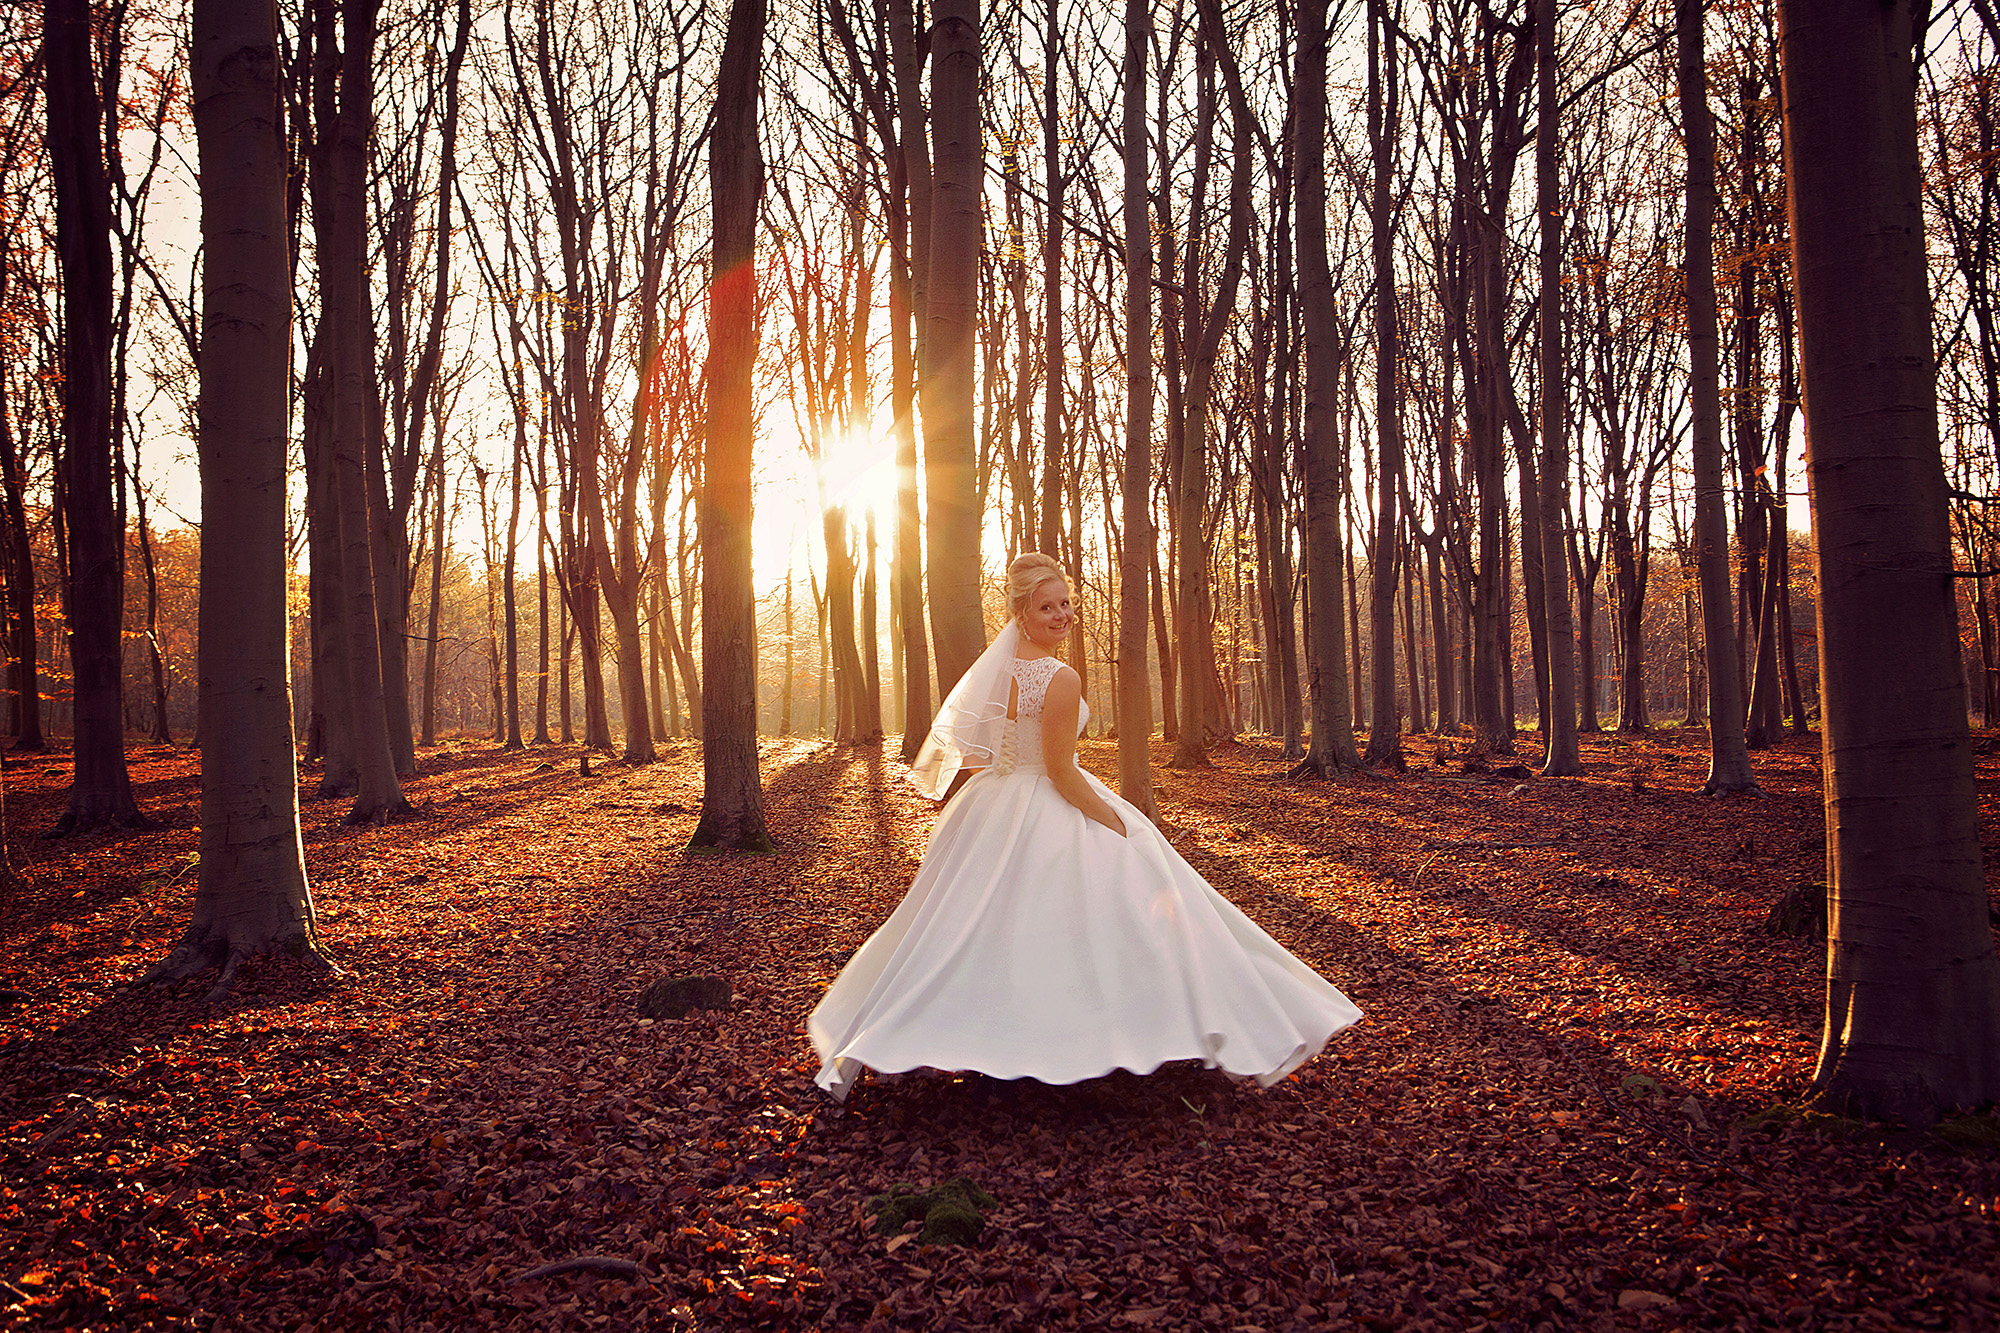 What to ask a wedding photographer before you book them 3.jpg